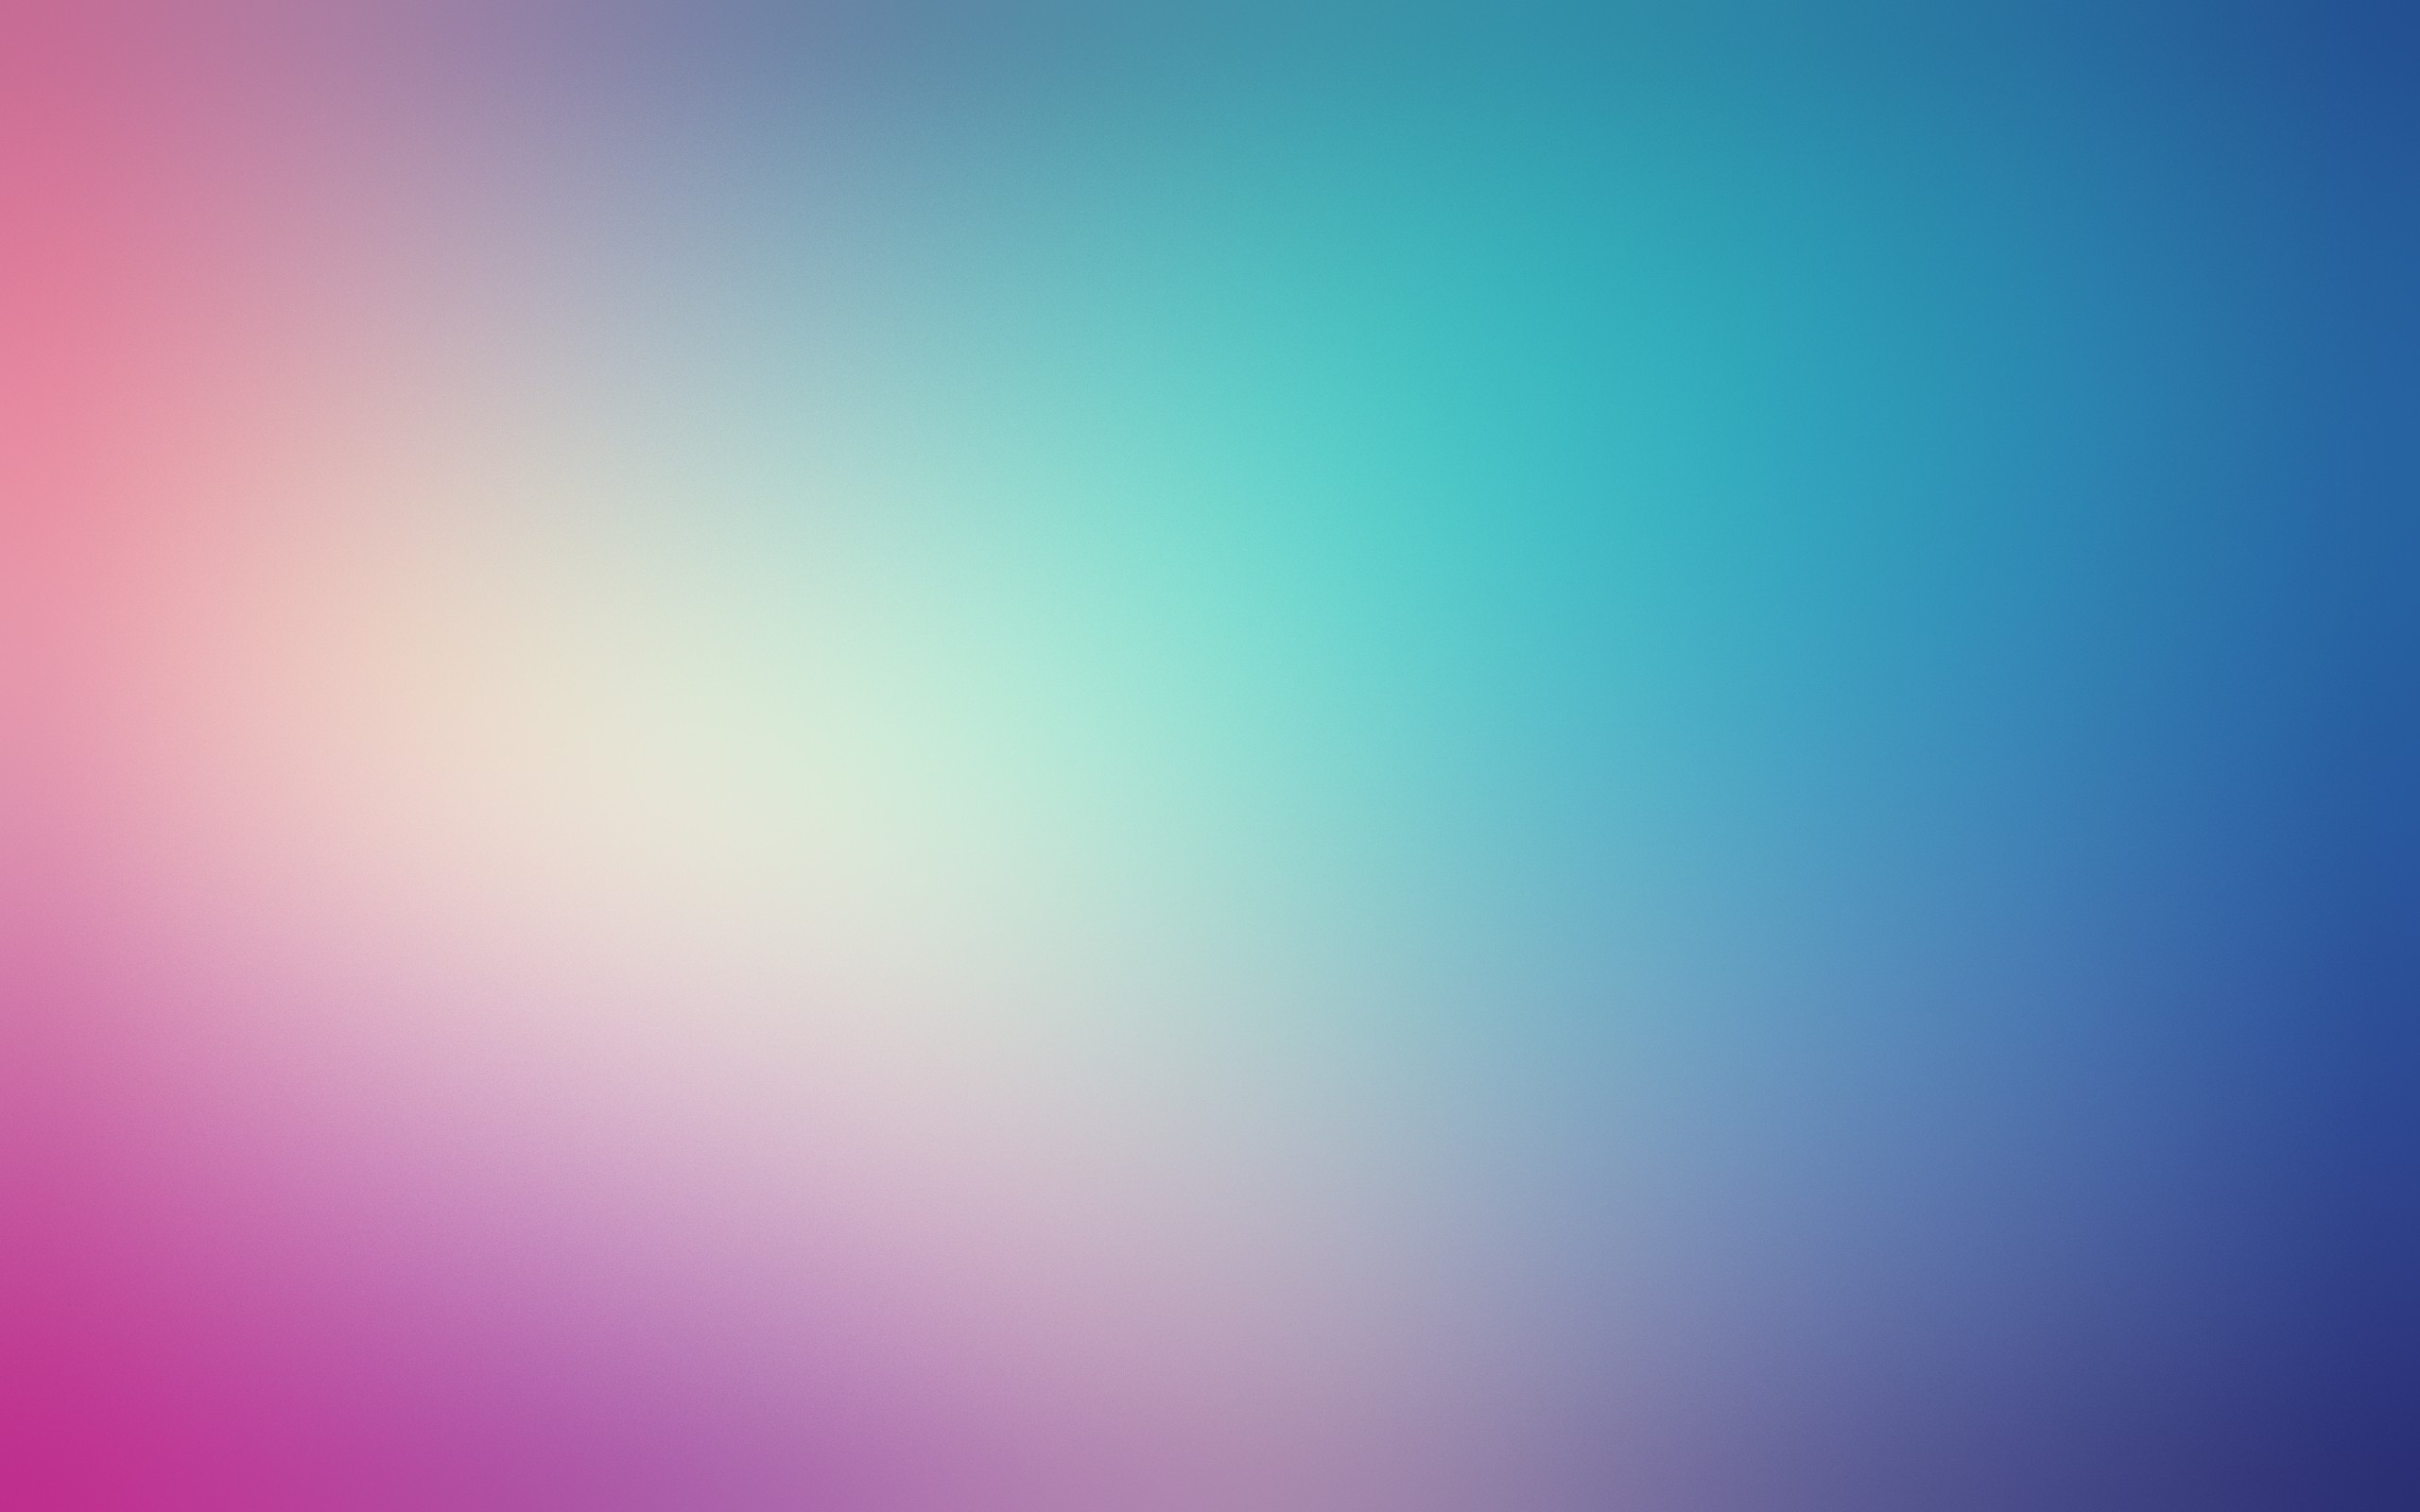 pastel grunge iphone wallpaper